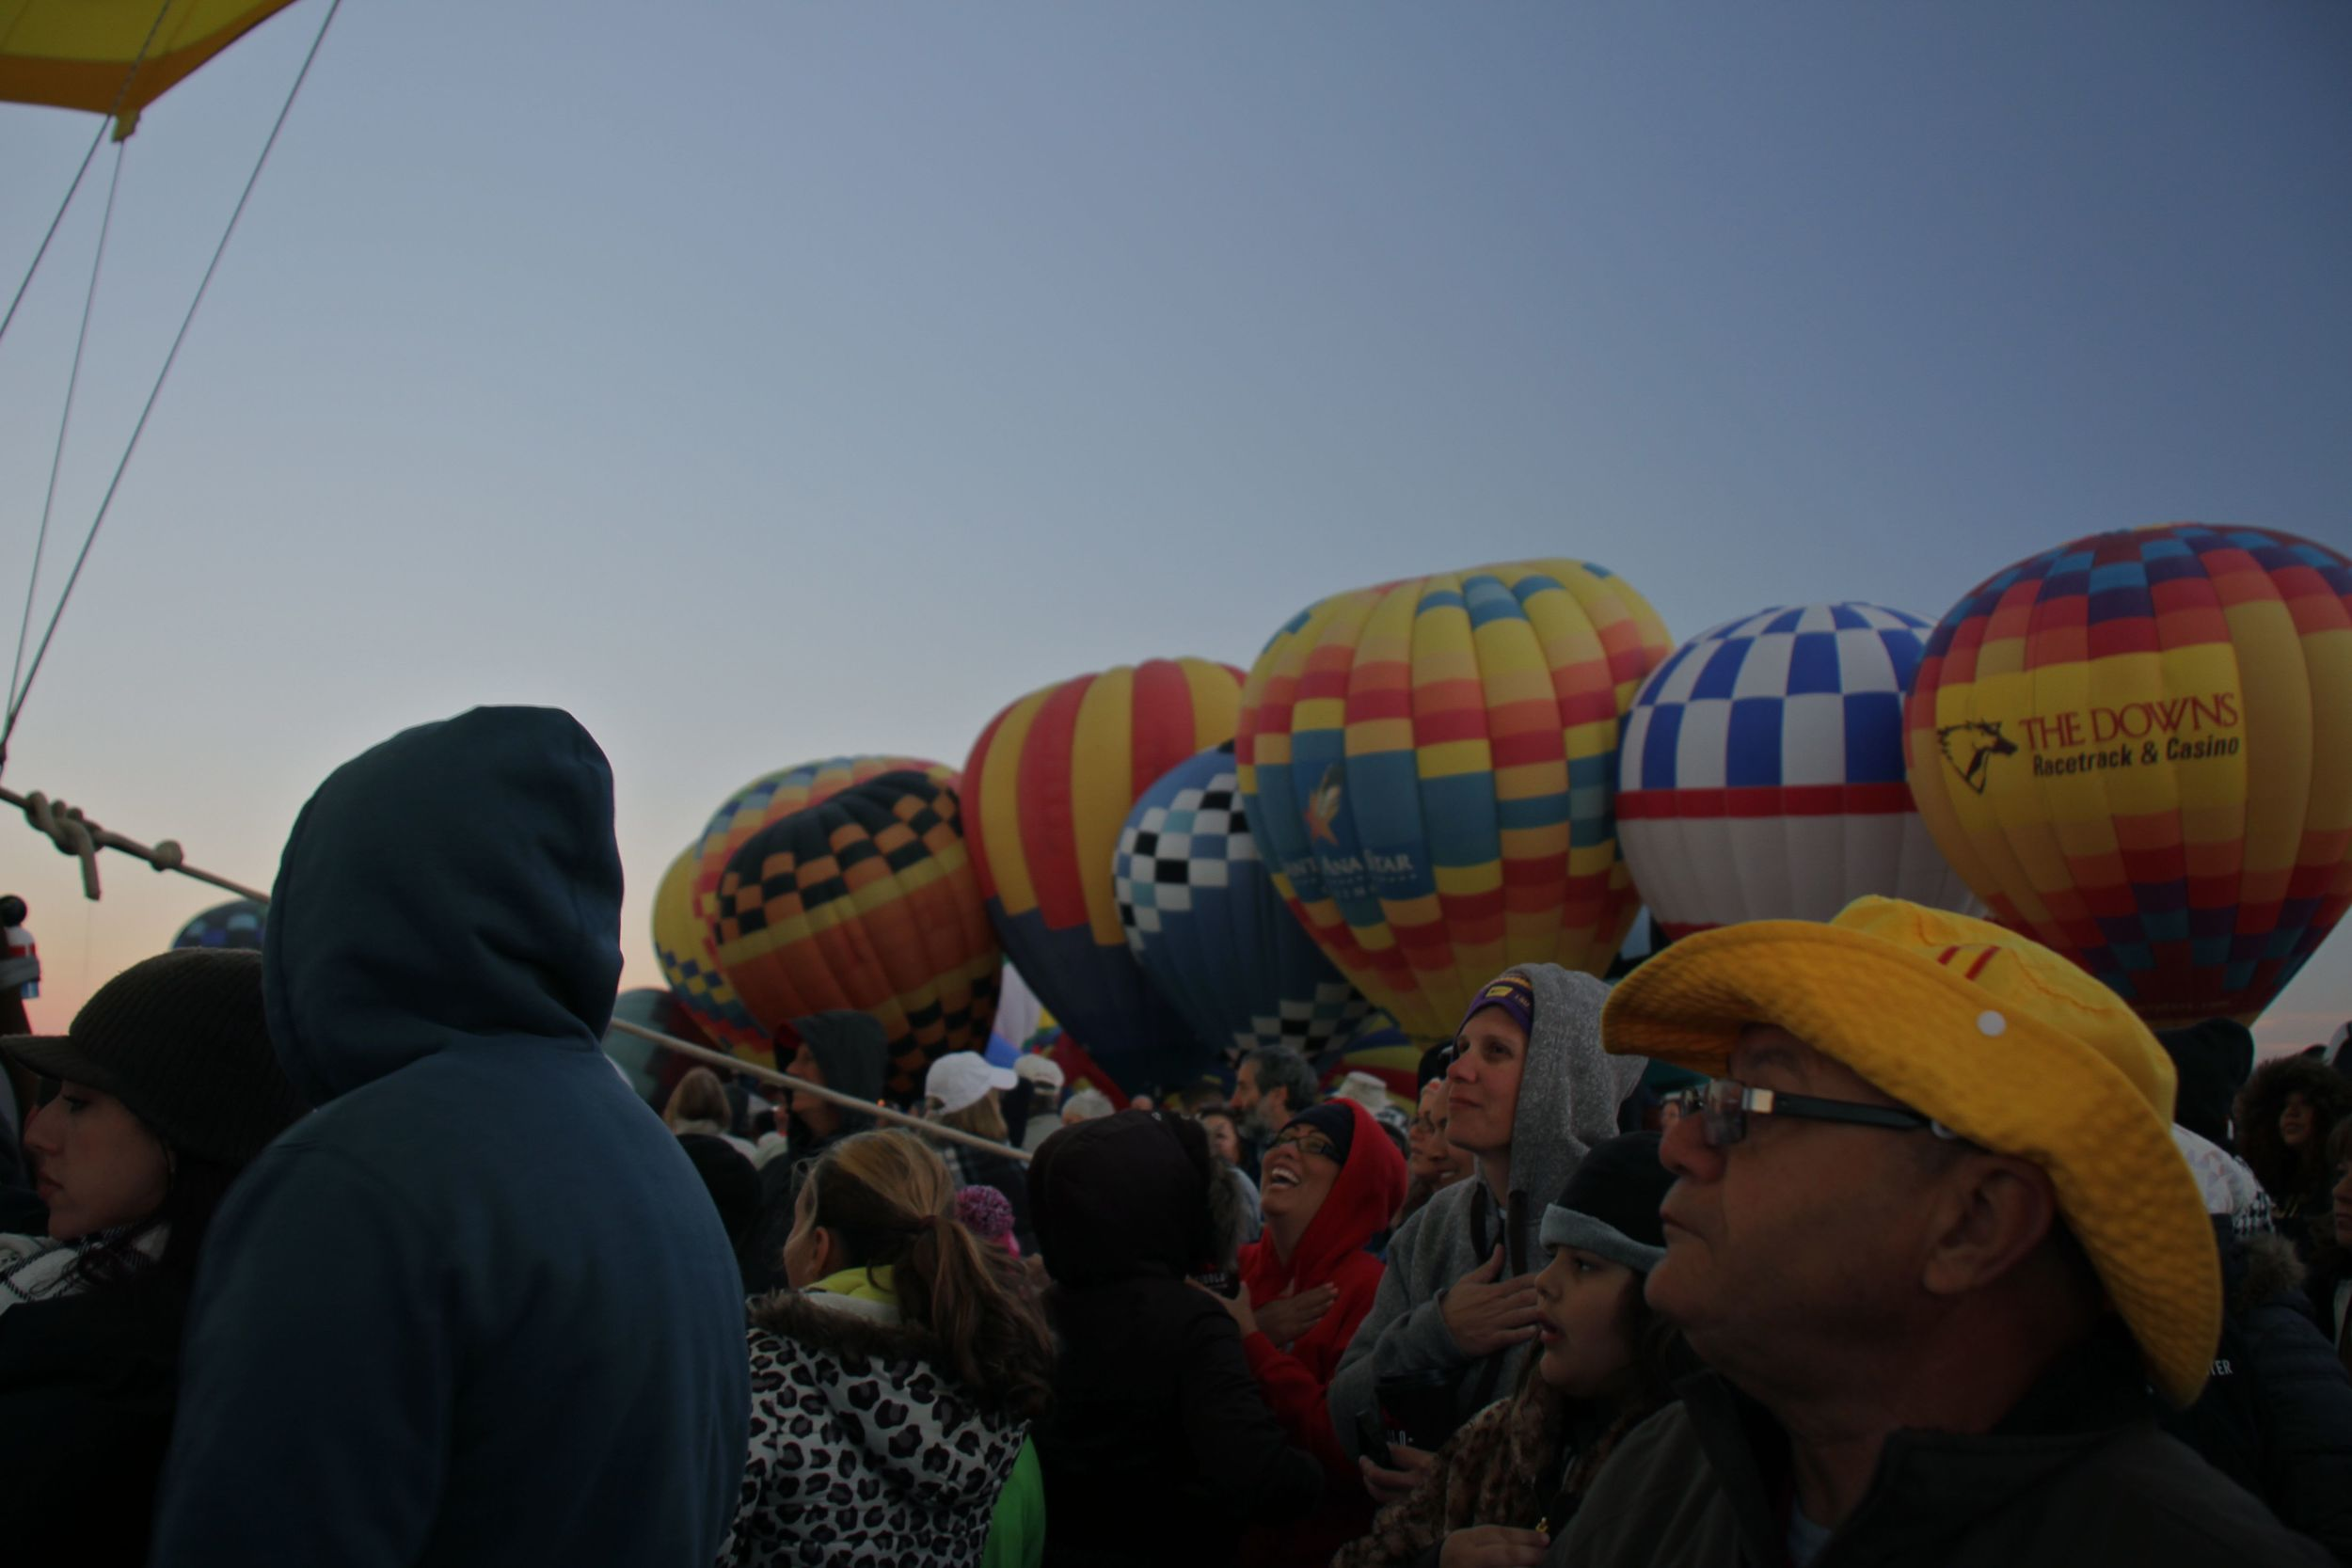 A wall of balloons rises around the crowd